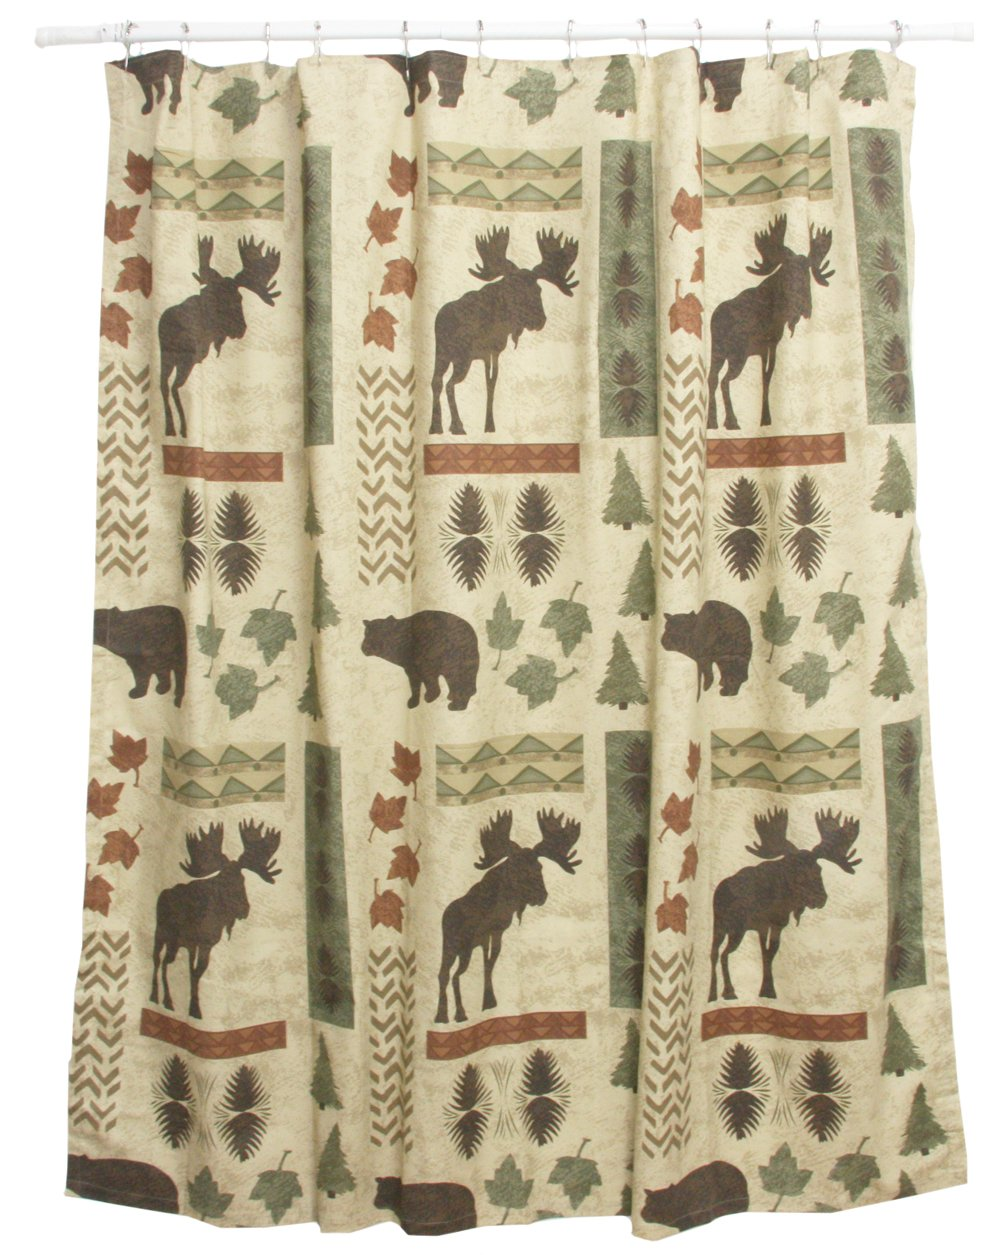 Bear & Moose Shower Curtain